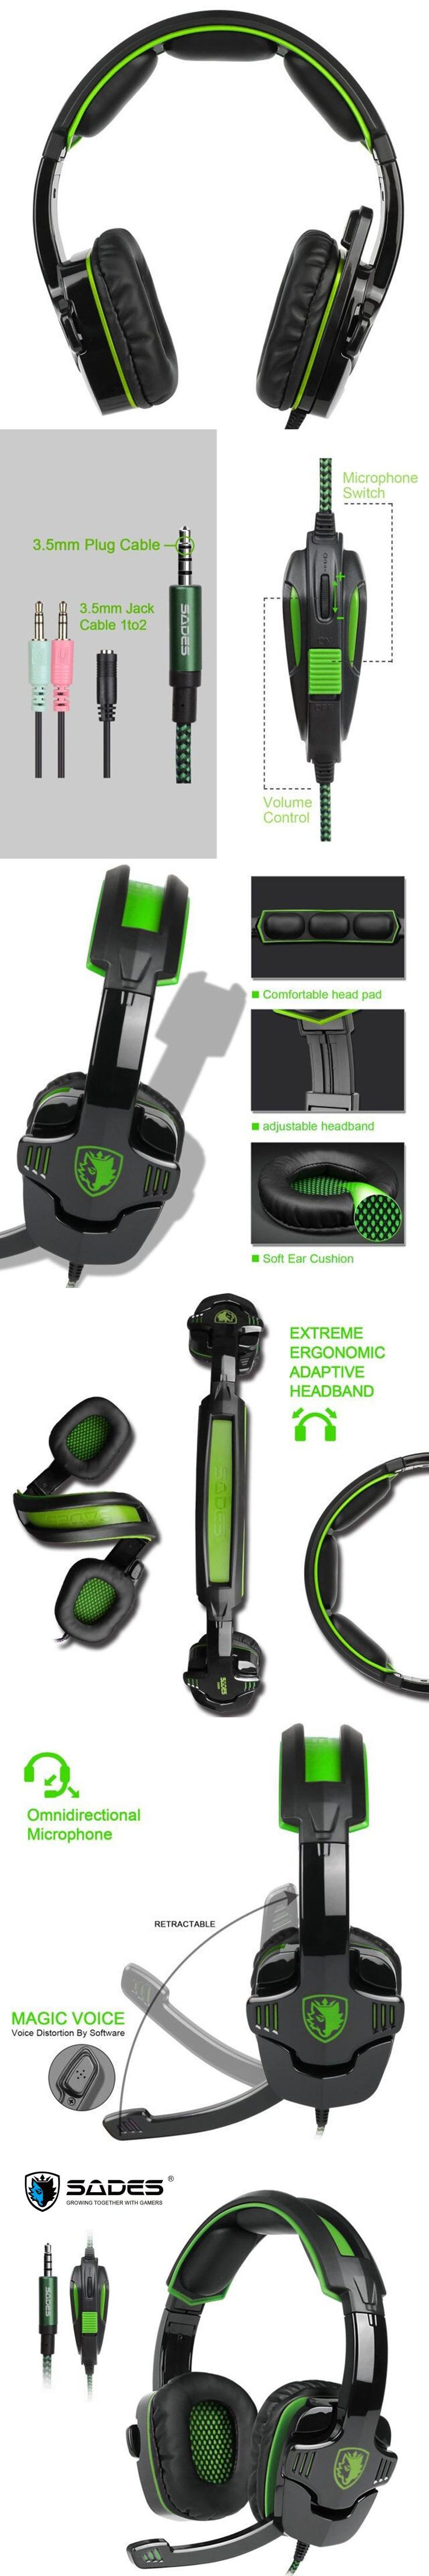 SADES SA930 3.5mm Gaming Headset Computer Headphone with Mic Noise Cancelling for Mac/Xbox One/Cell Phone/PS4/Tablet